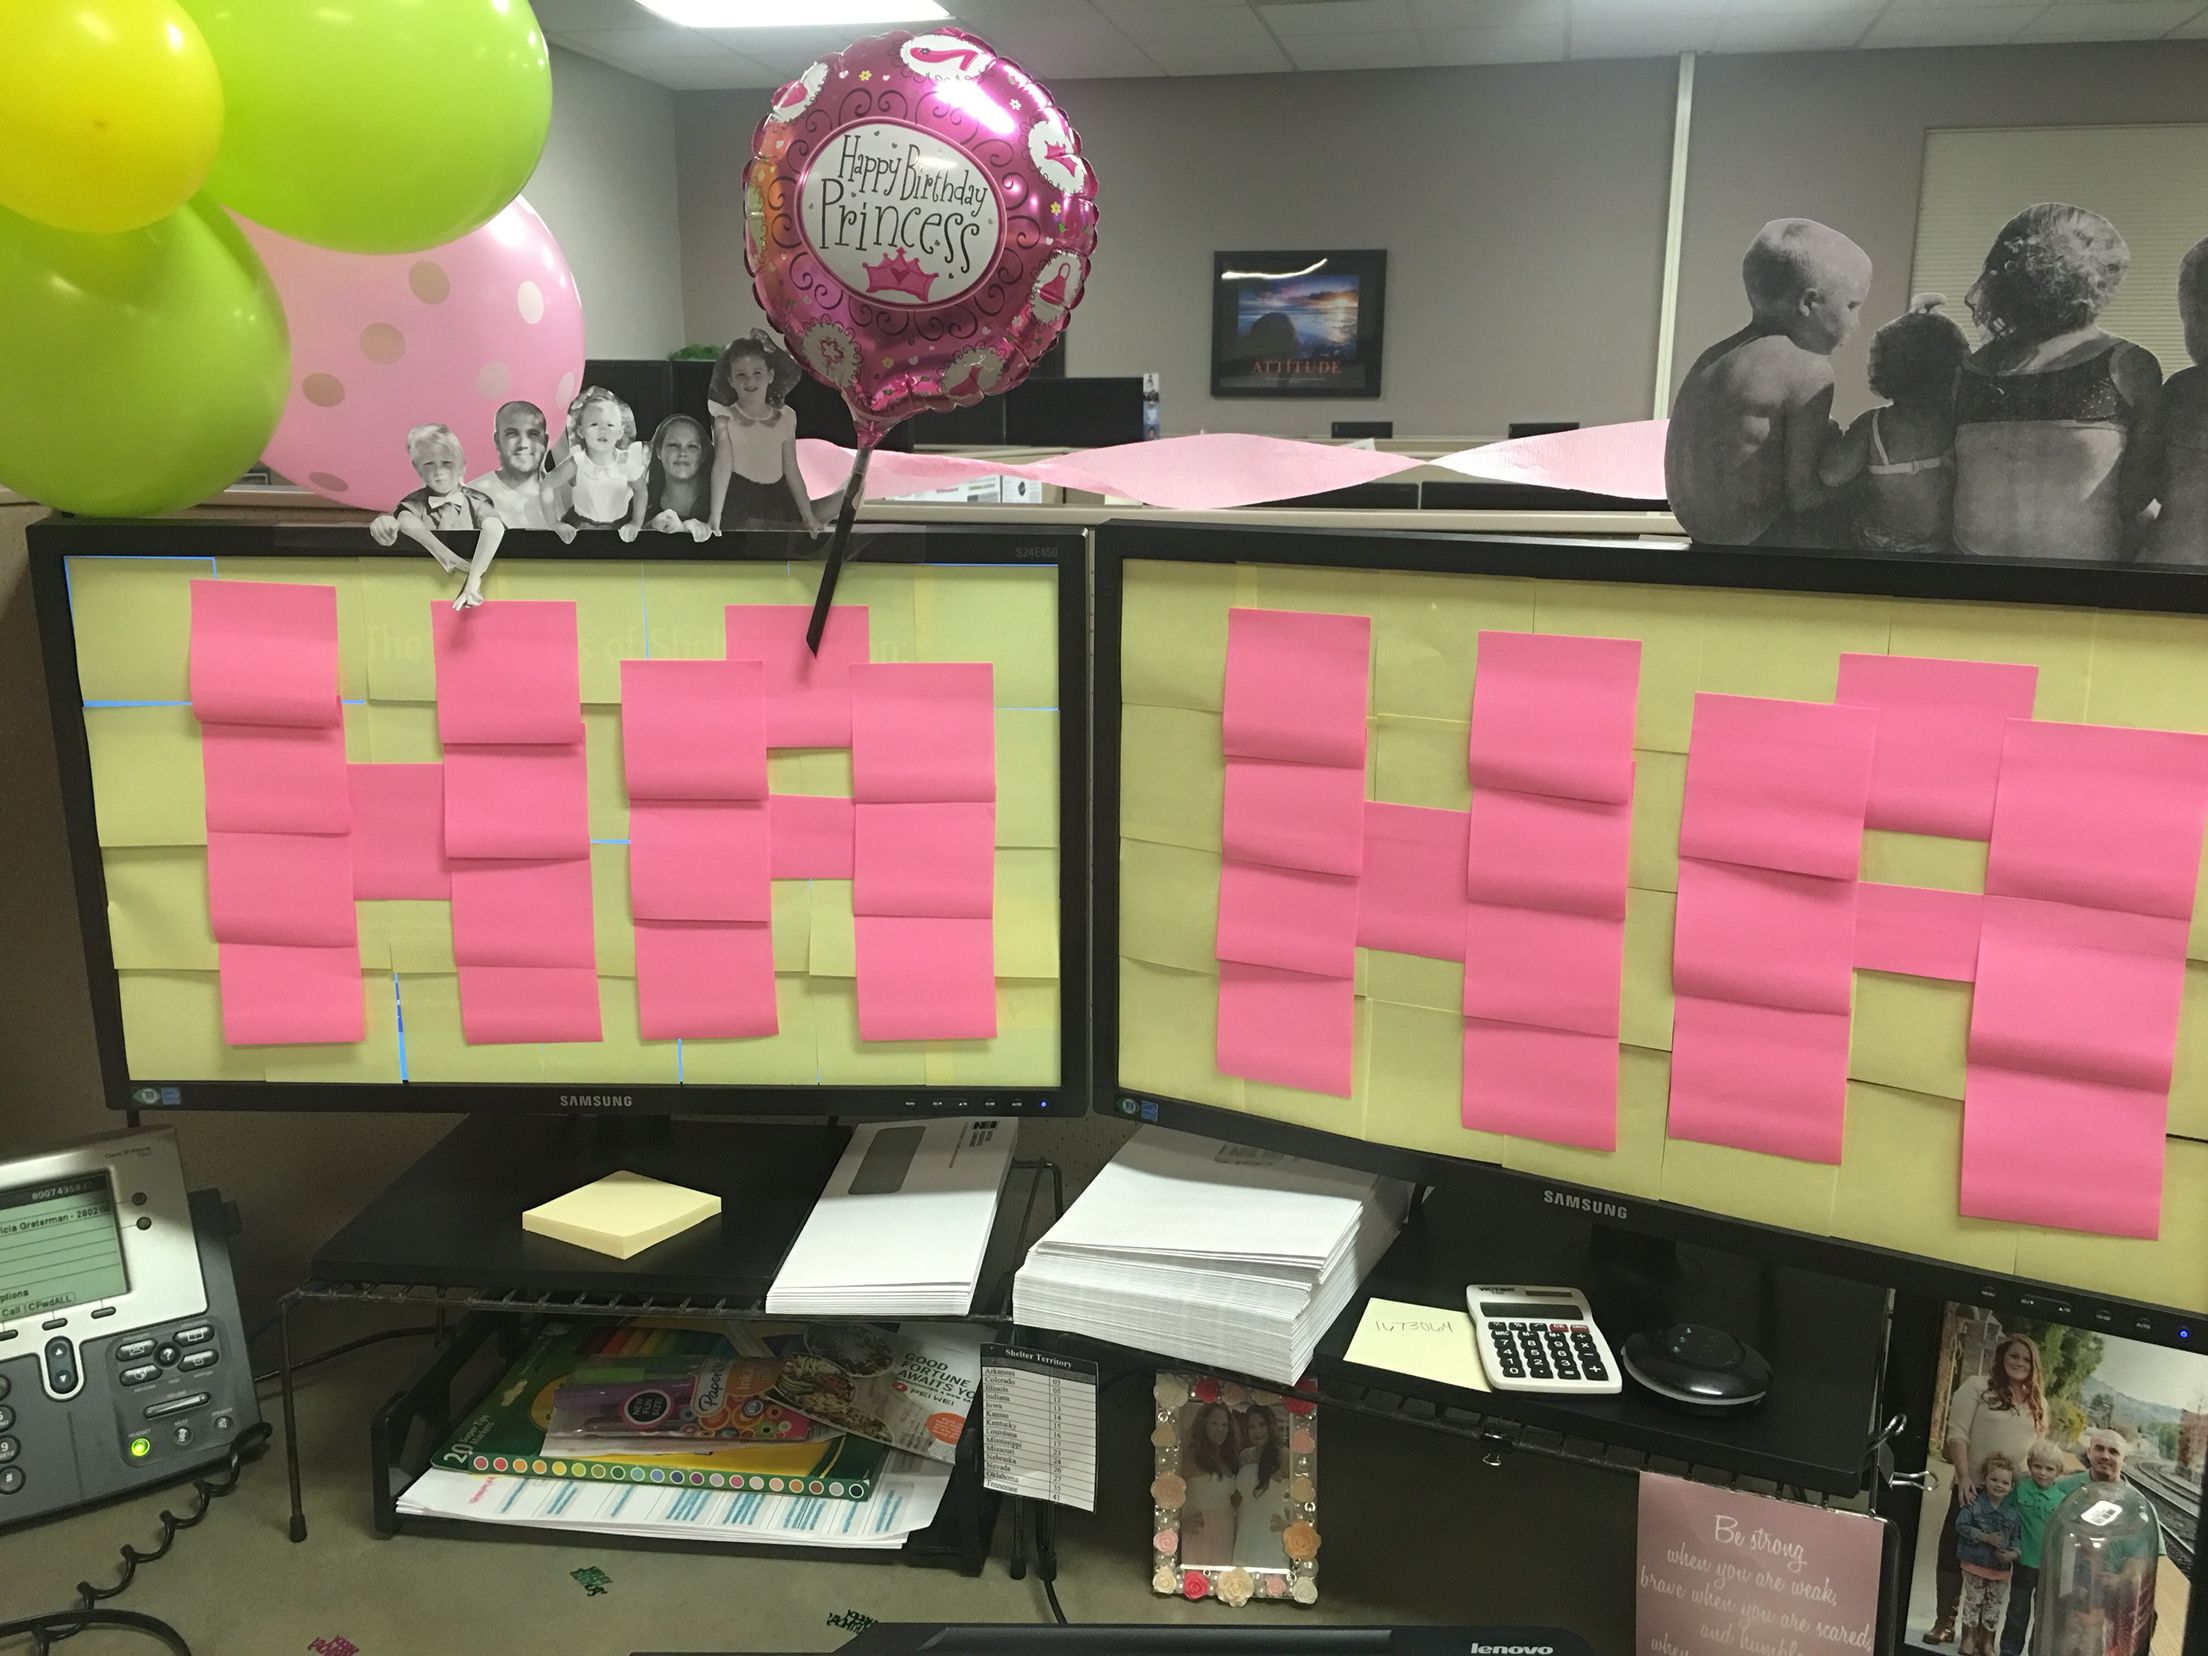 Work decoration birthday cubicle balloon sticky note for 50th birthday decoration ideas for office